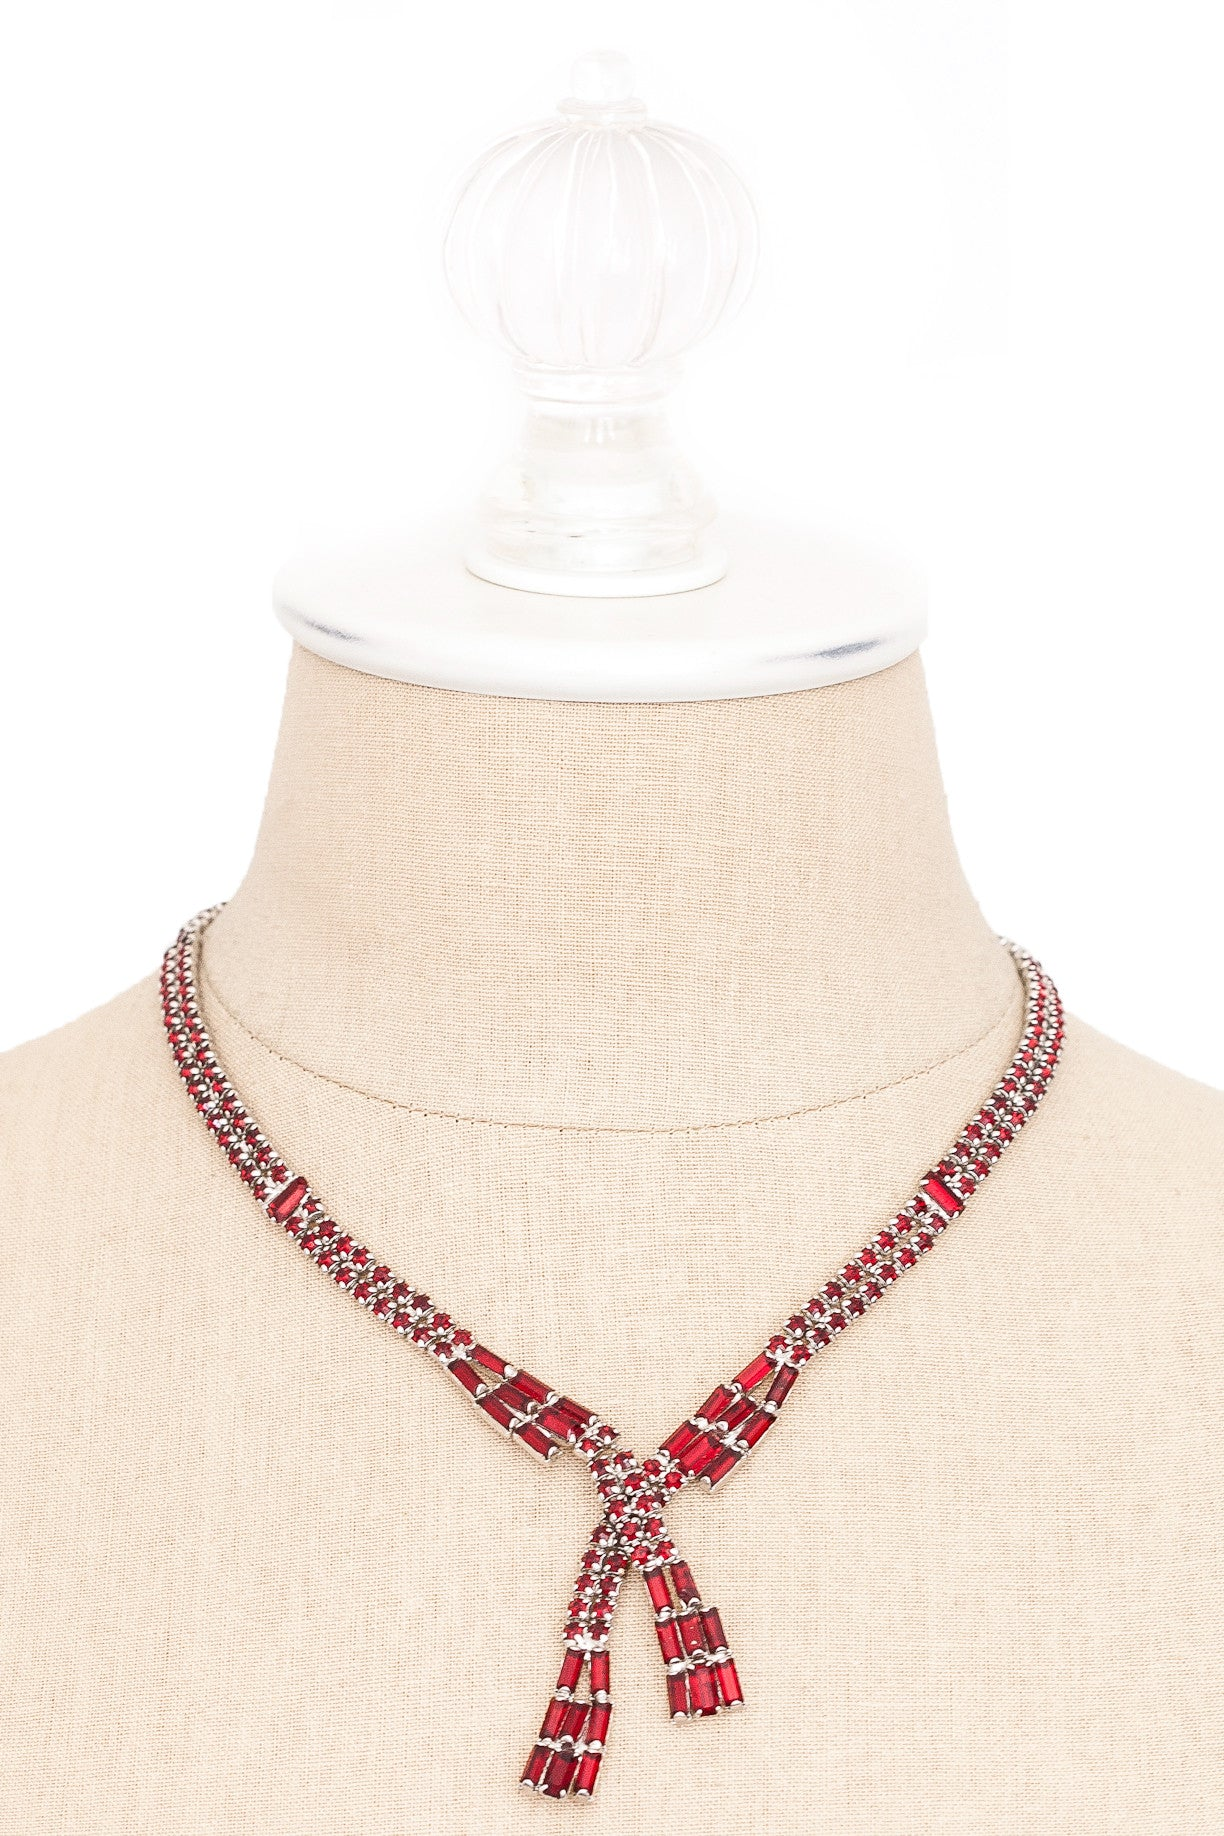 50's__Vintage__Red Rhinestone Drop Necklace